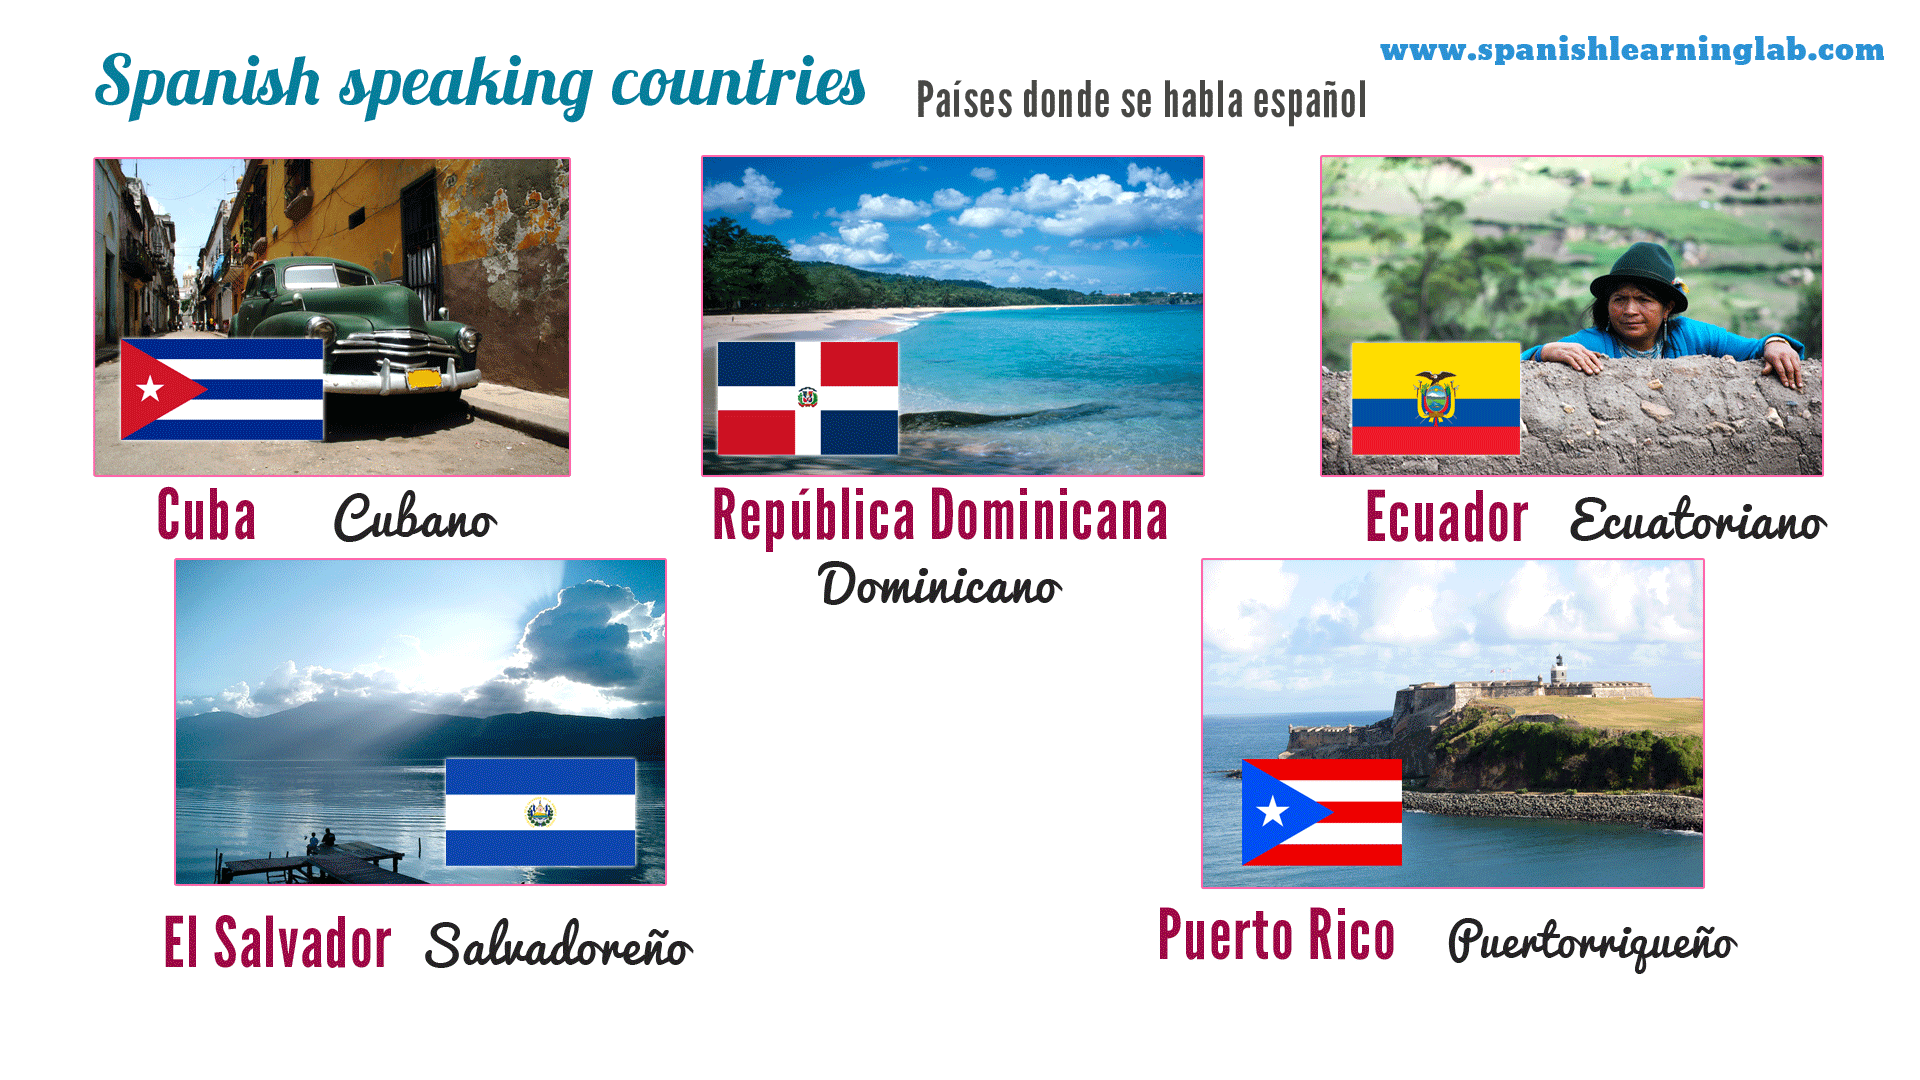 5 More Spanish Speaking Countries